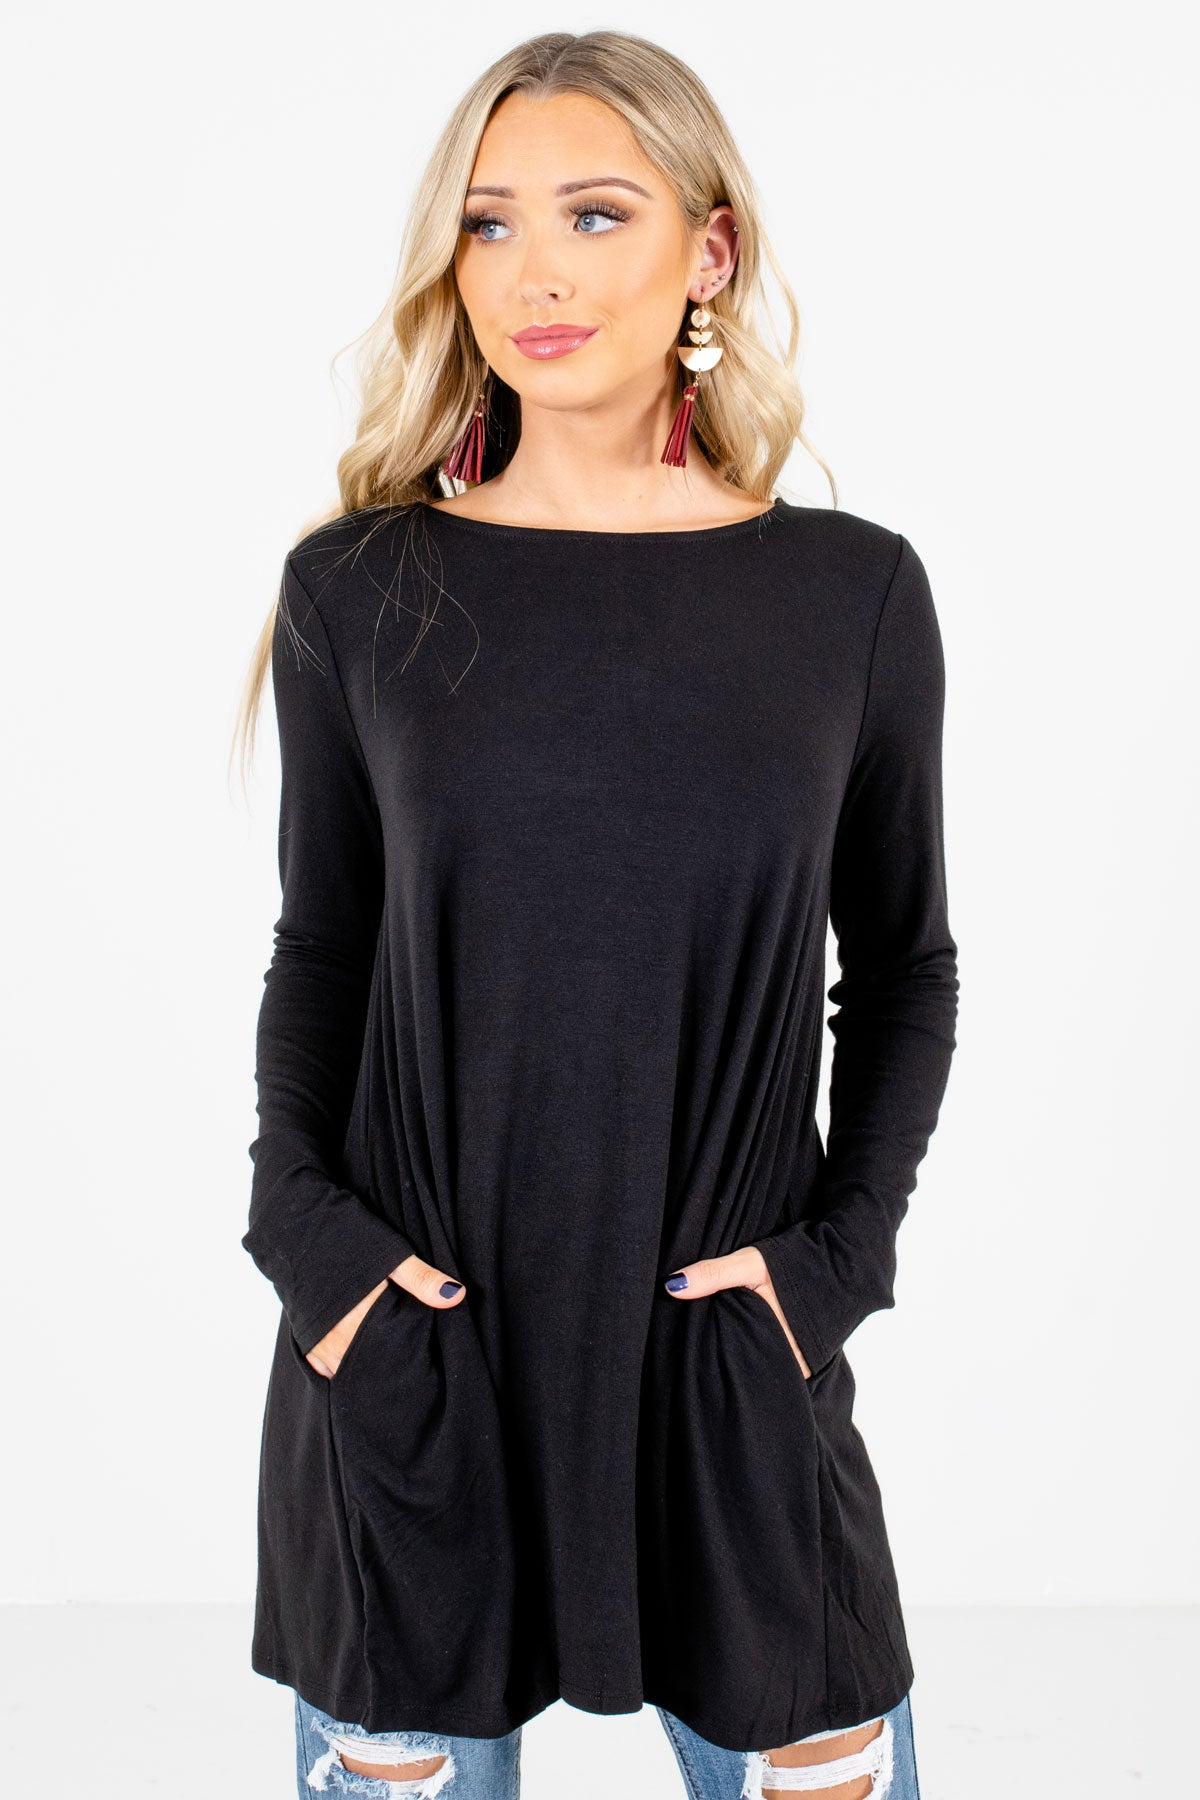 Black Boutique Long Sleeve Tops for Women